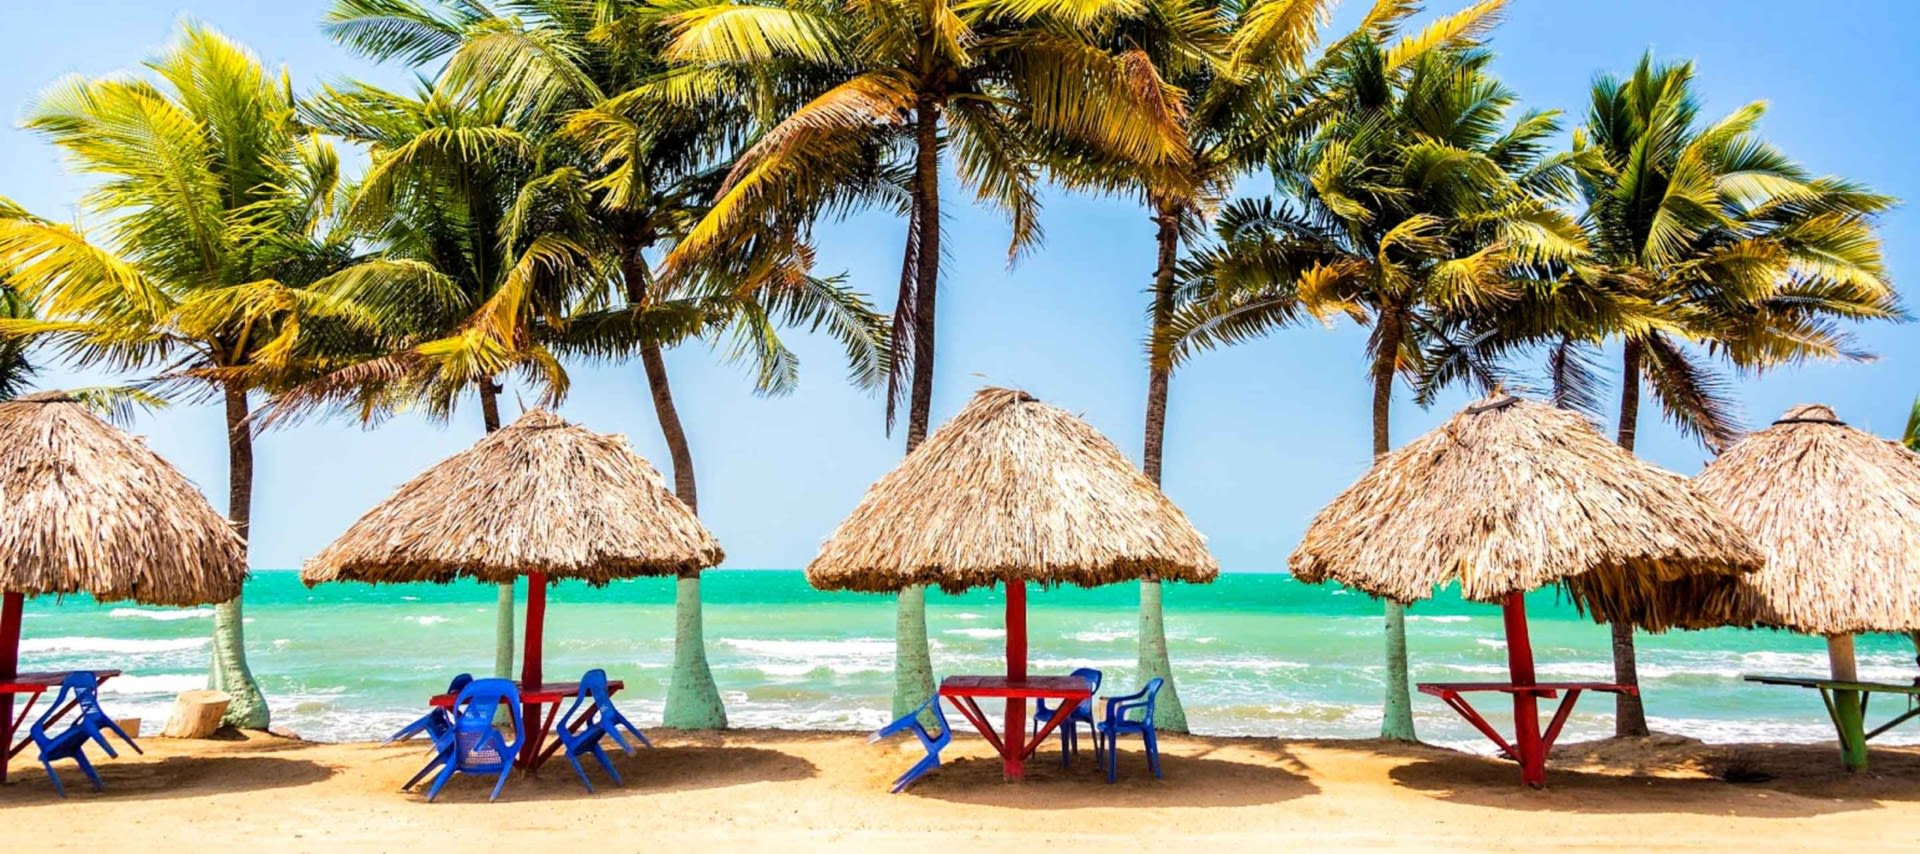 Colombia beach seating area with palm trees